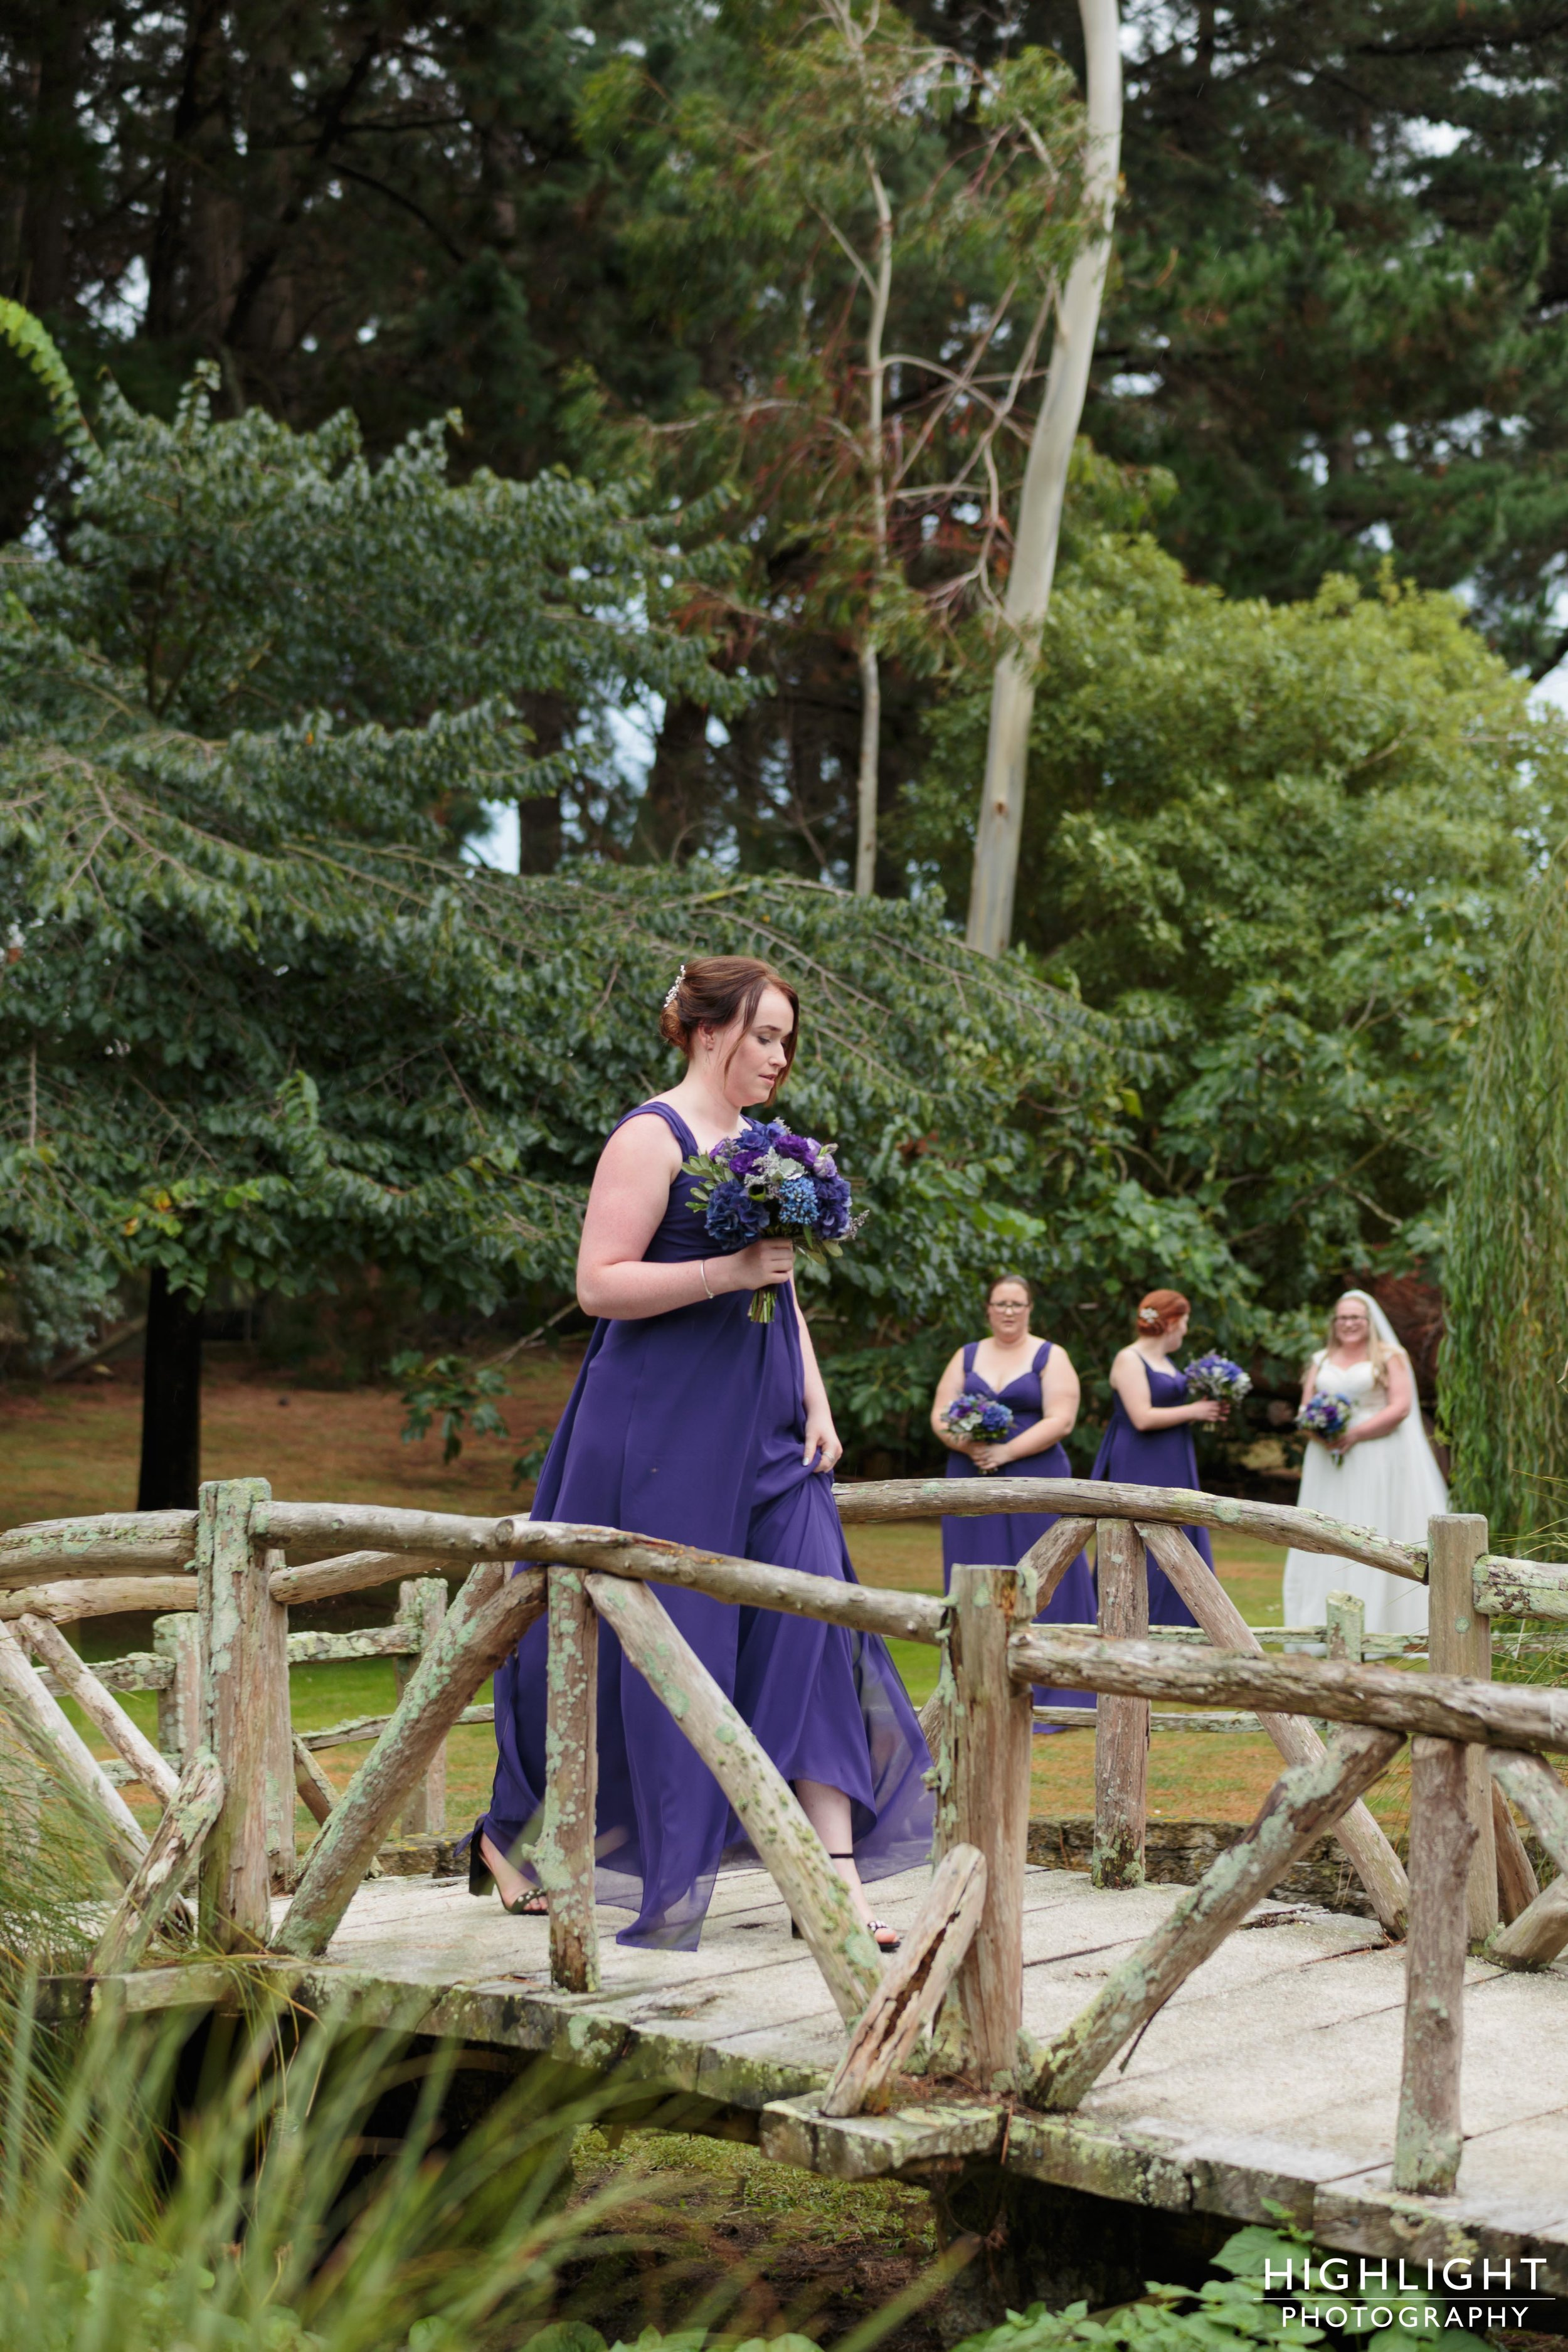 highlight-wedding-photography-new-zealand-palmerston-north-39.jpg